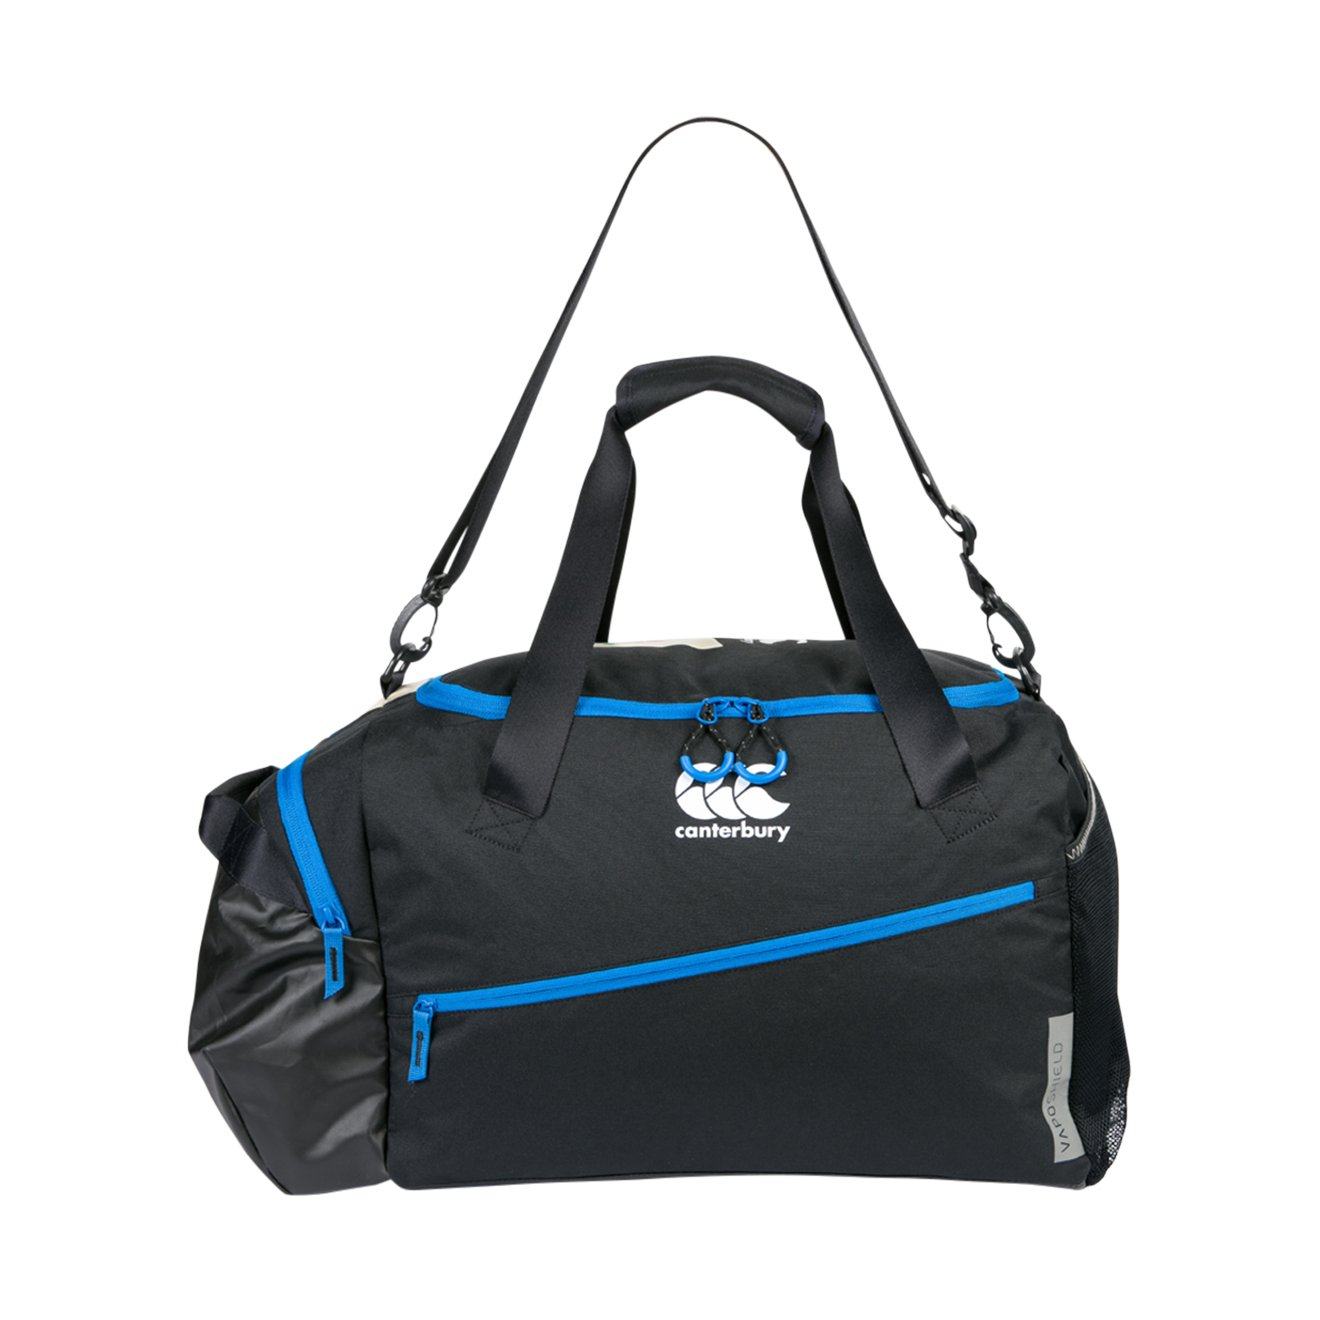 (Anthracite, One Size) - Canterbury 2018-2019 England Rugby Medium Sports Bag (Anthracite)   B07D1HK3B8